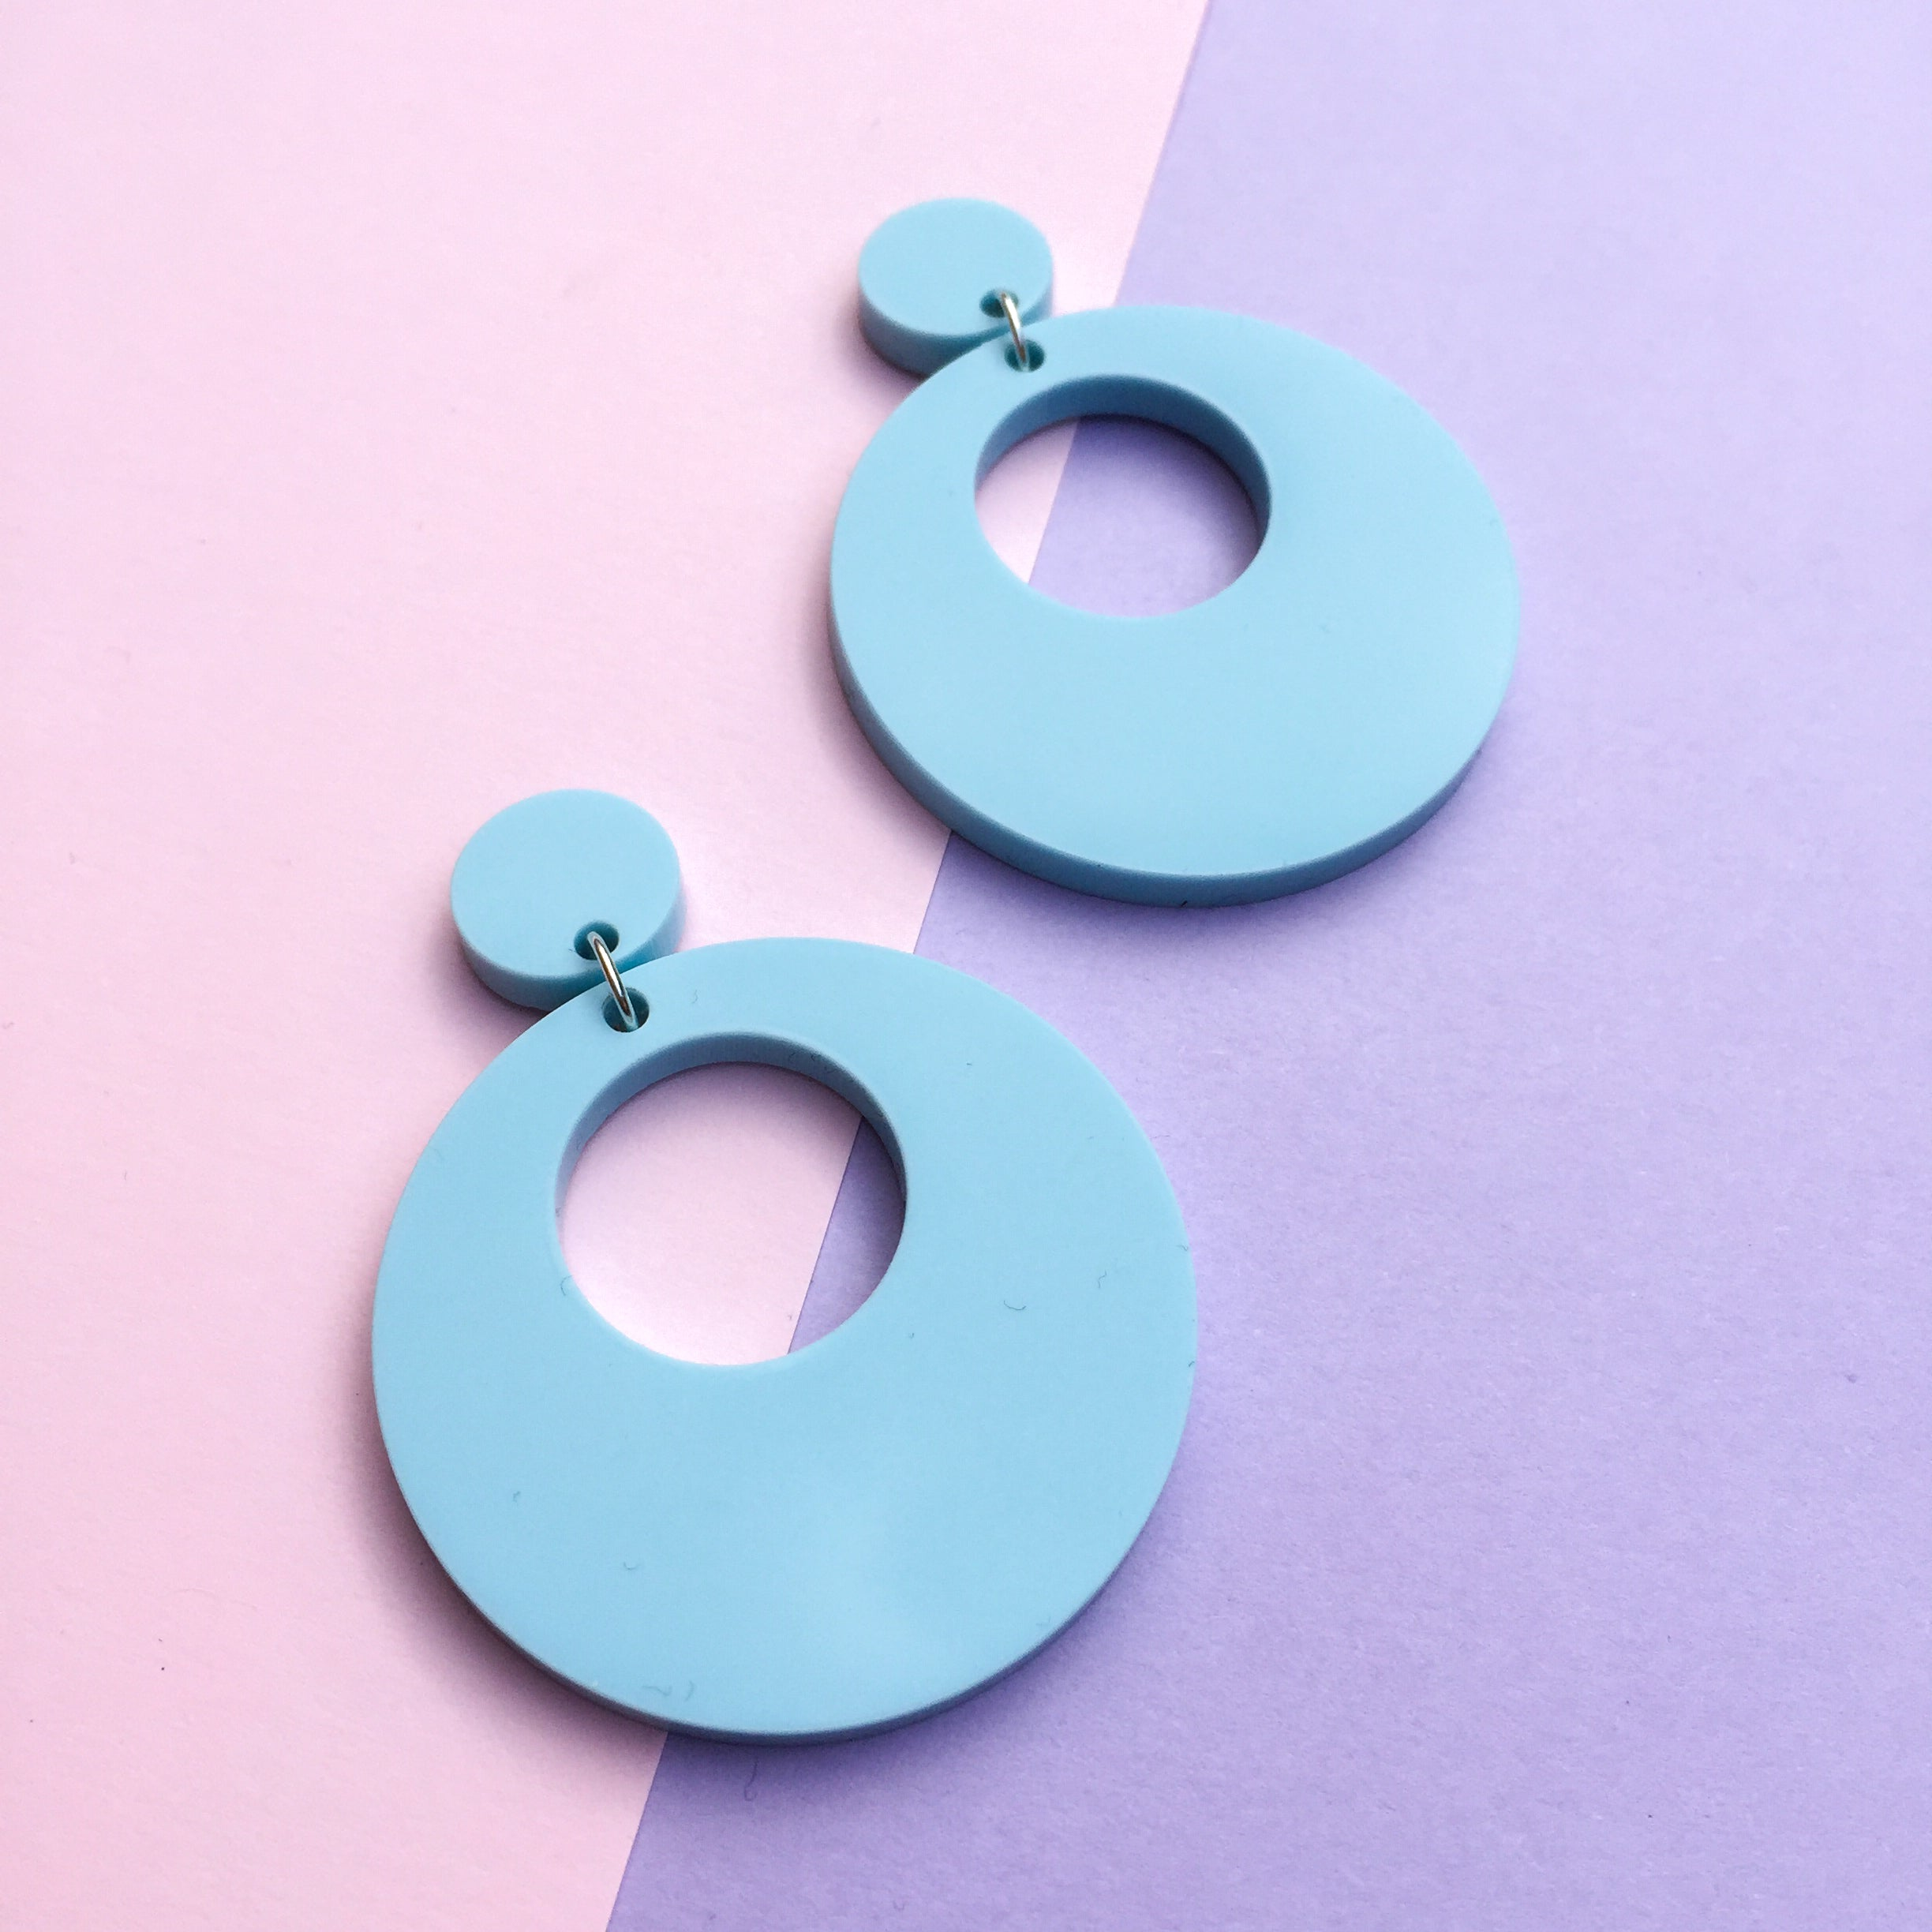 Mod Inspired Stud Hoop Earrings - Pastel Blue